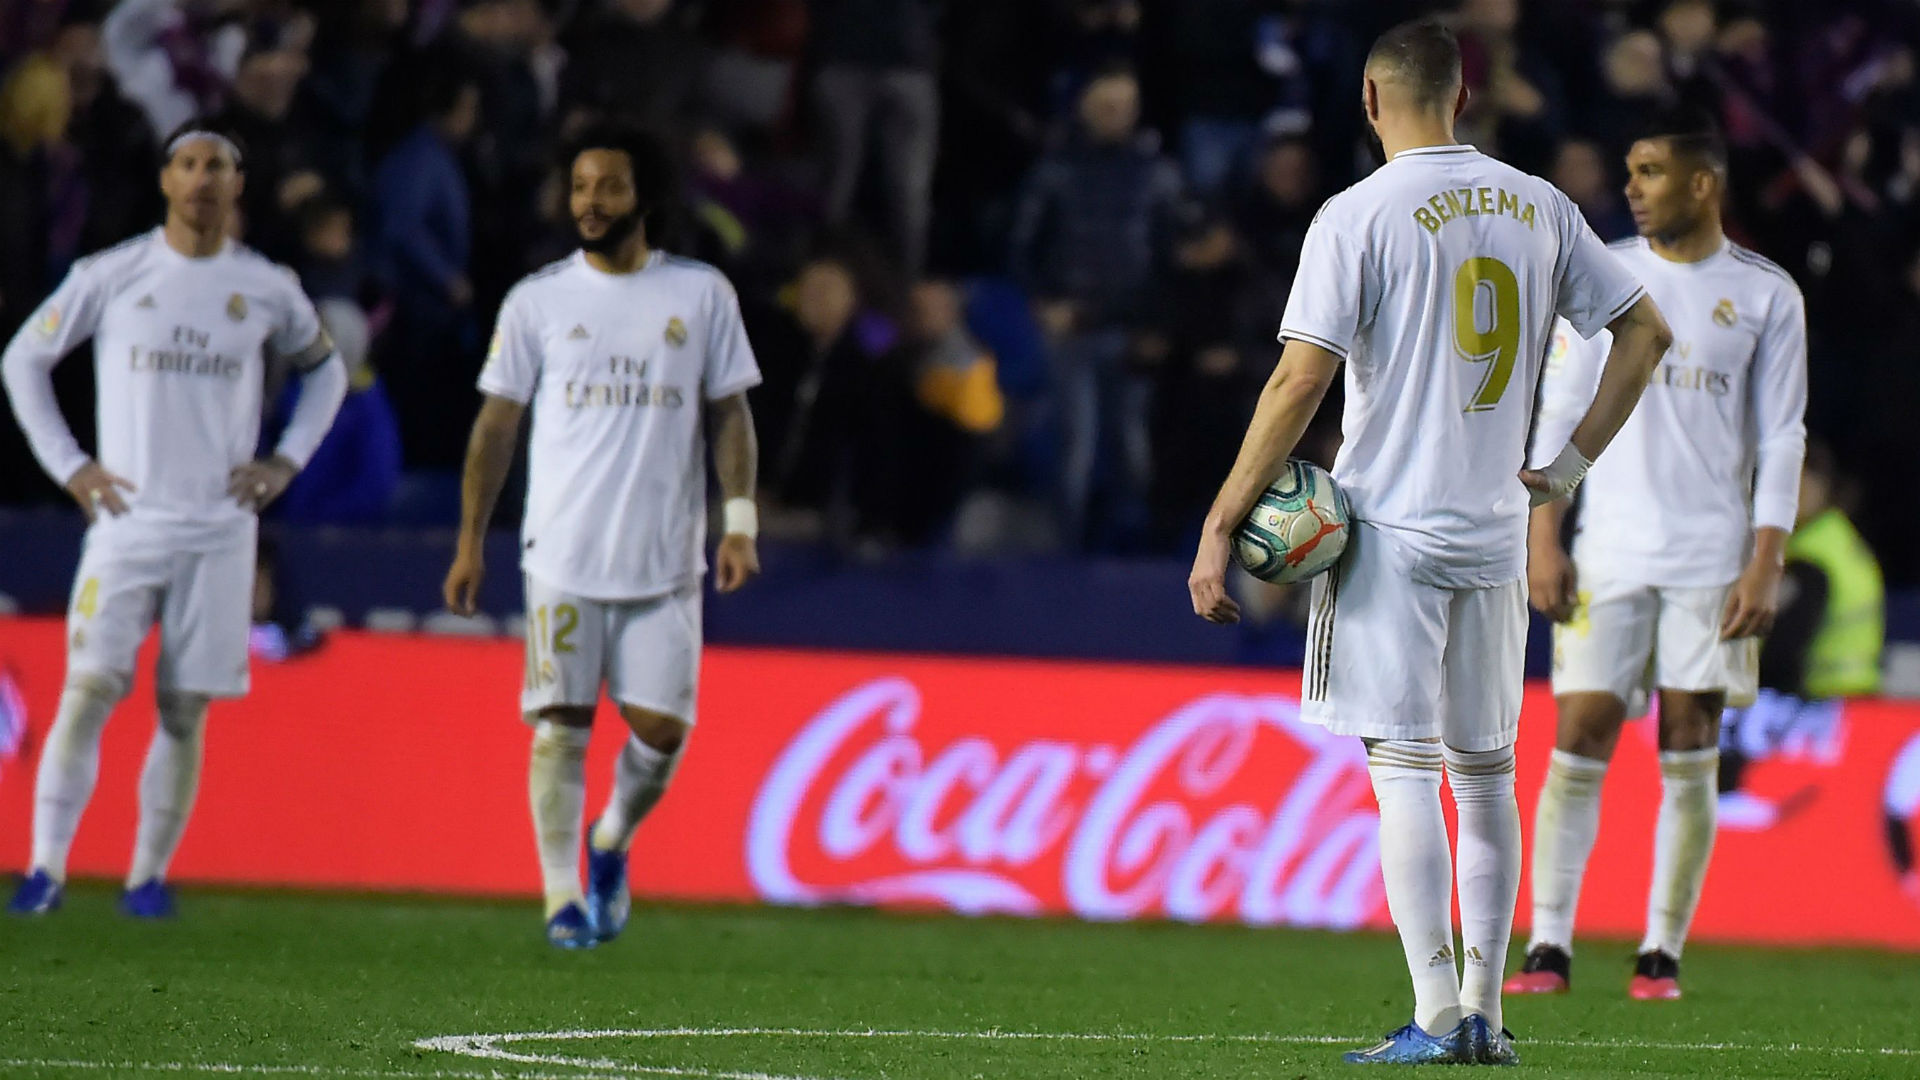 Levante - Real Madrid 1-0, le Real chute à Levante